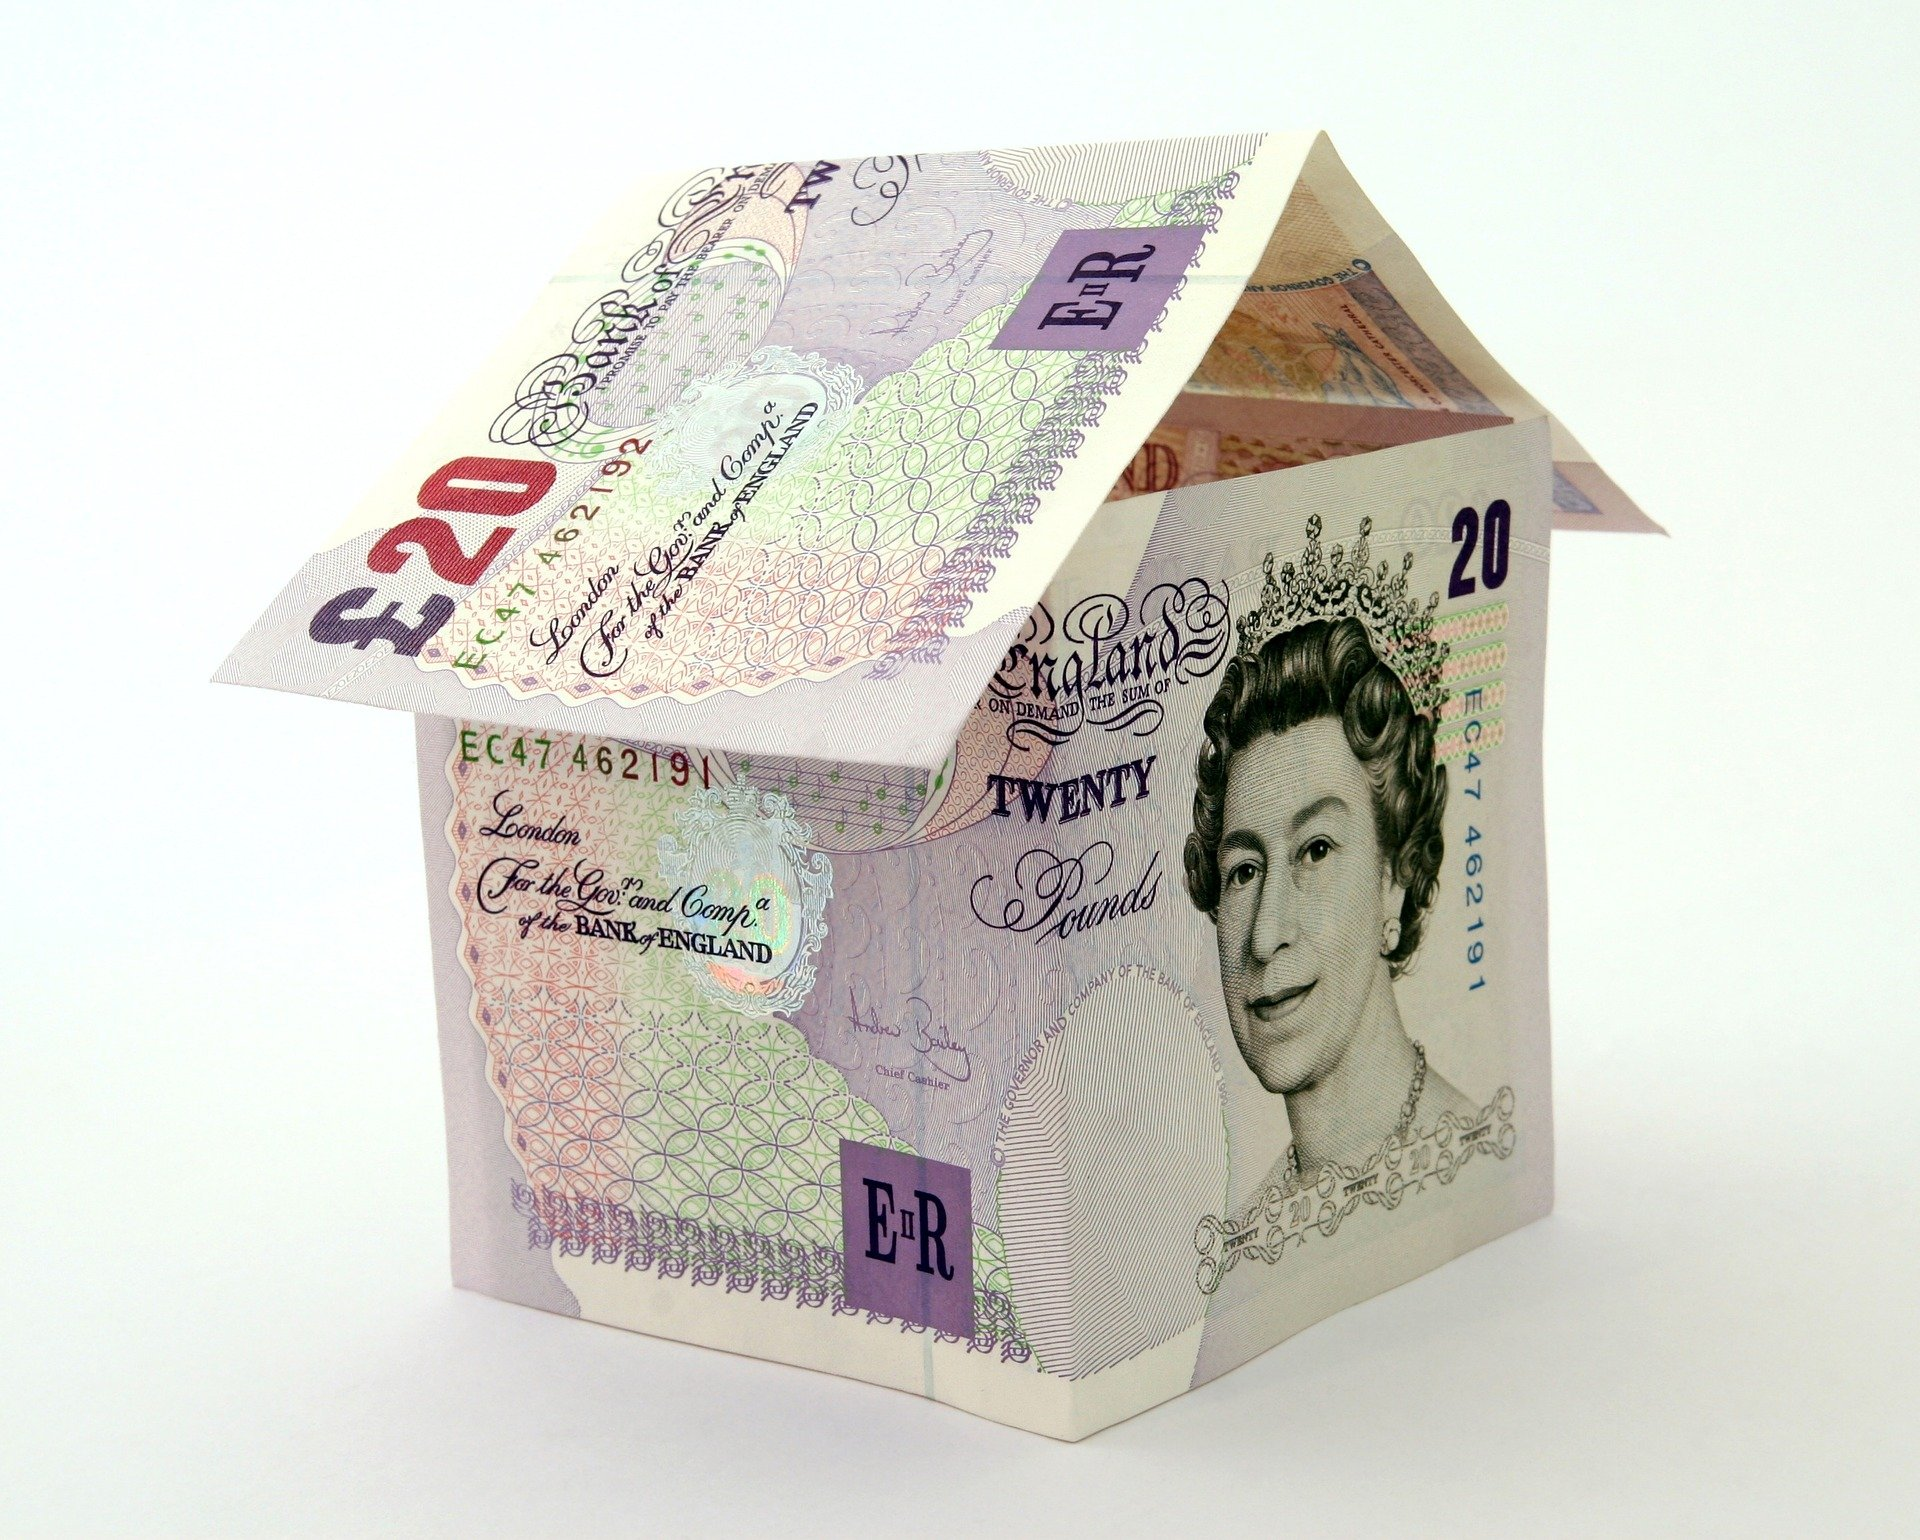 Selling a property post death- is there a capital gains tax charge?